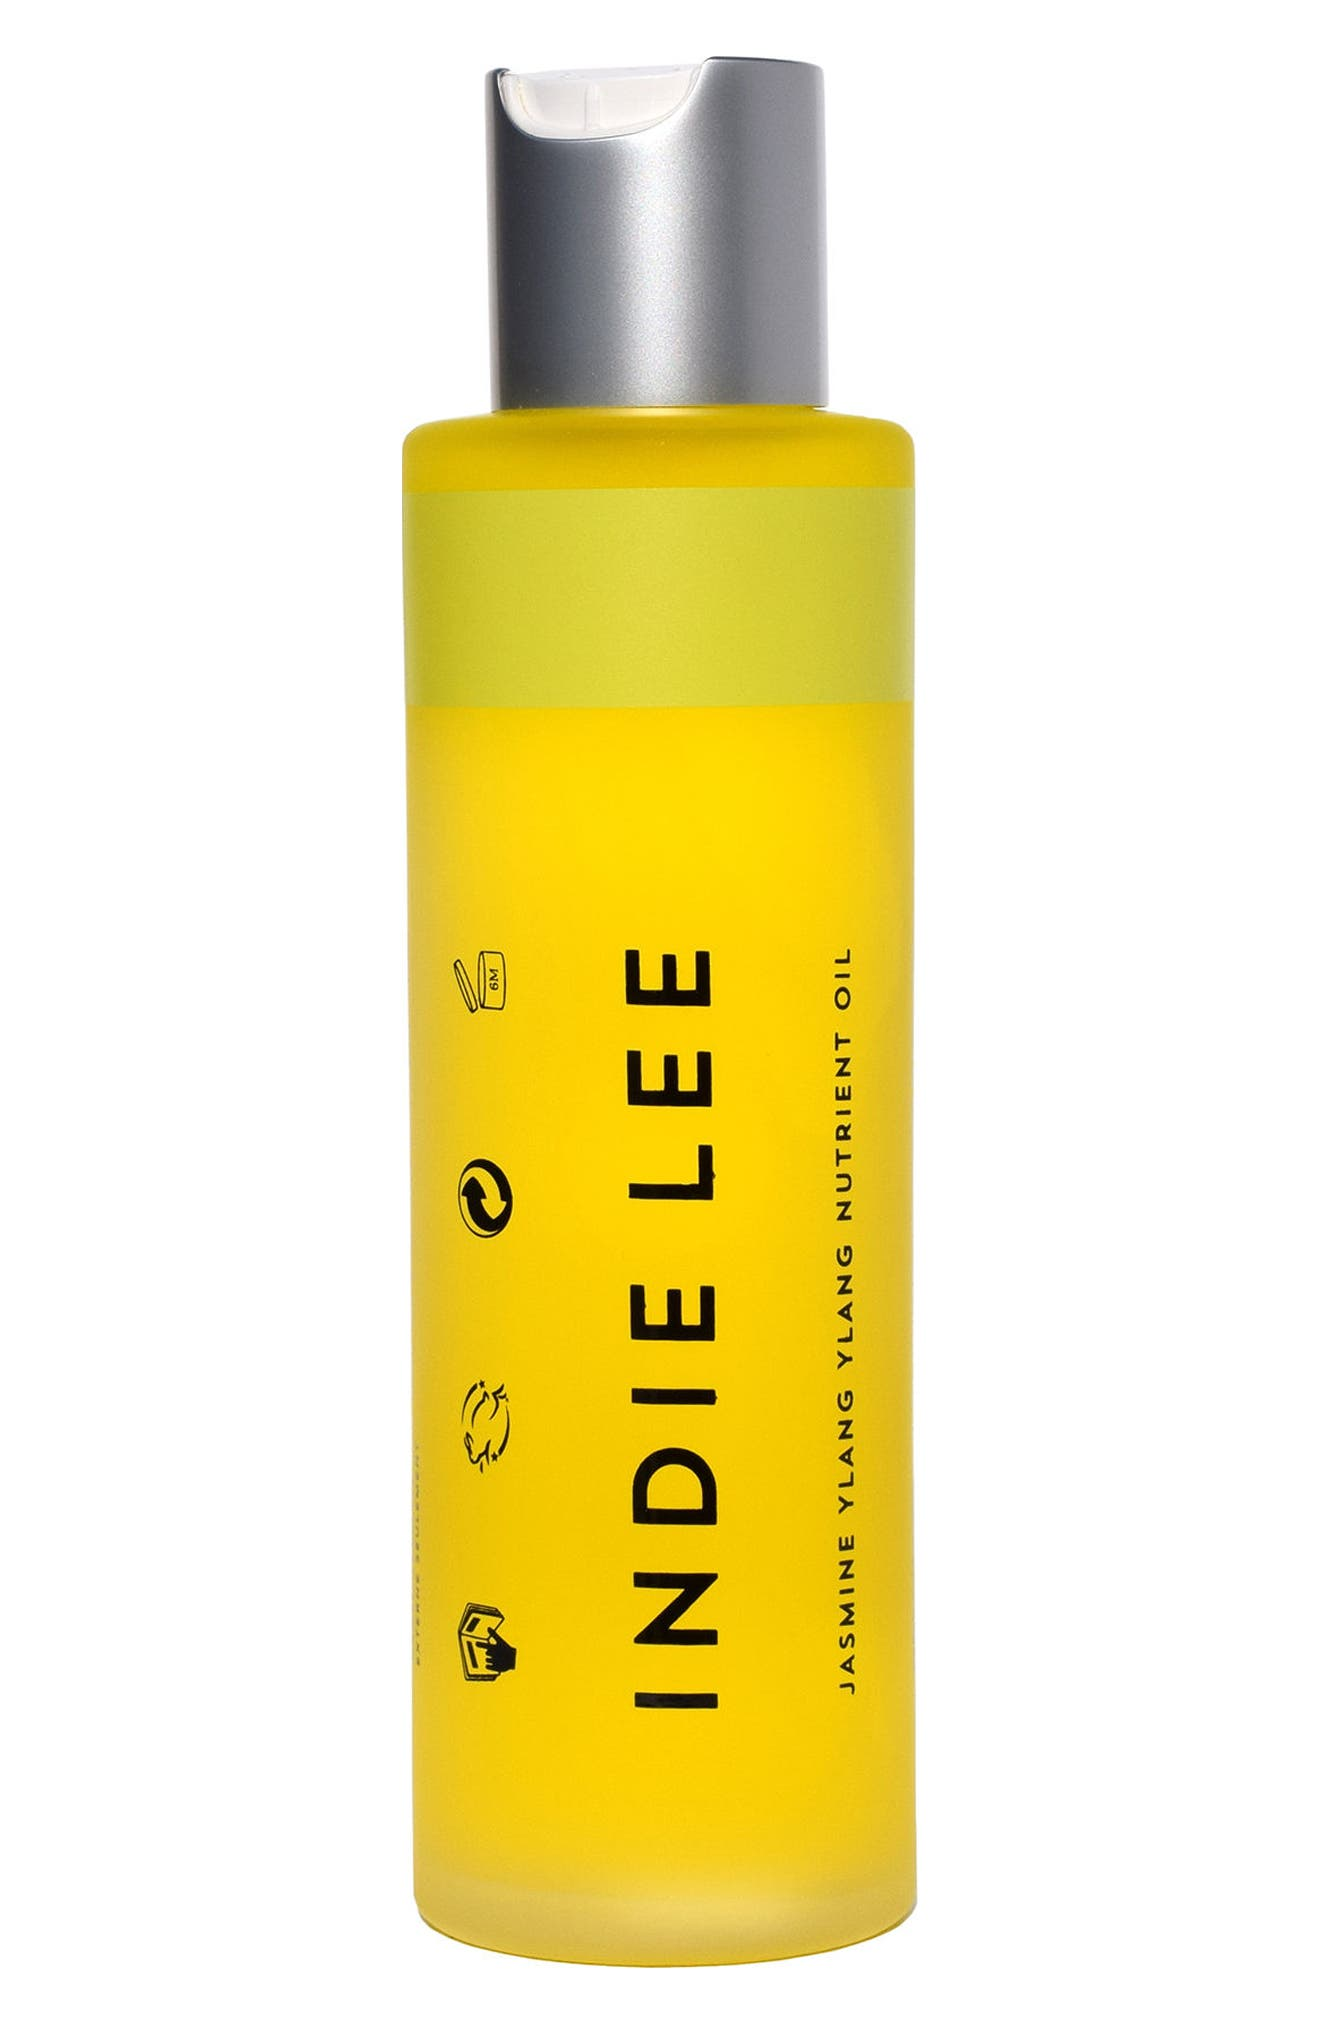 Main Image - Indie Lee Jasmine Ylang Ylang Nutrient Oil